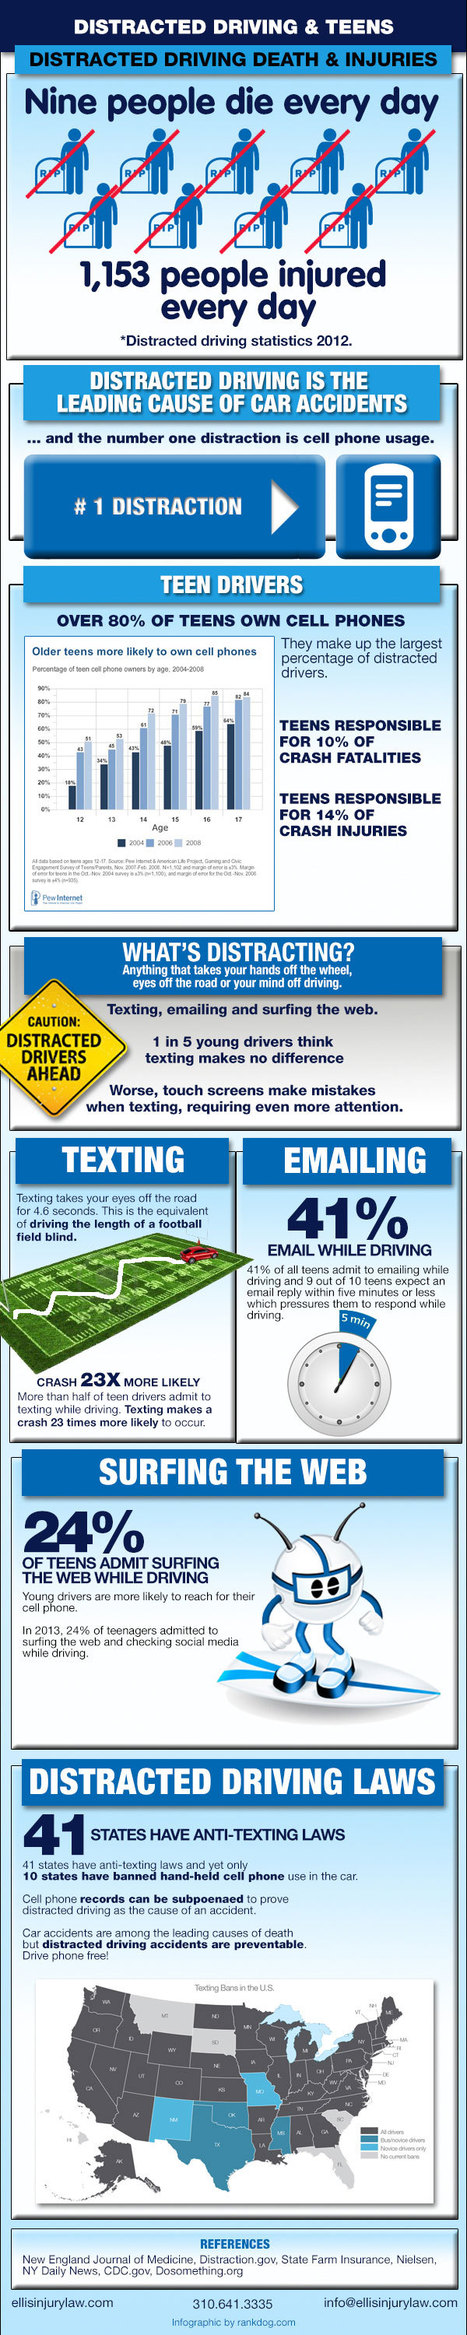 Teen Texting and Driving Accidents - Epidemic of Distracted Driving | Nebraska and National Accident, Injury & Disability Information | Scoop.it